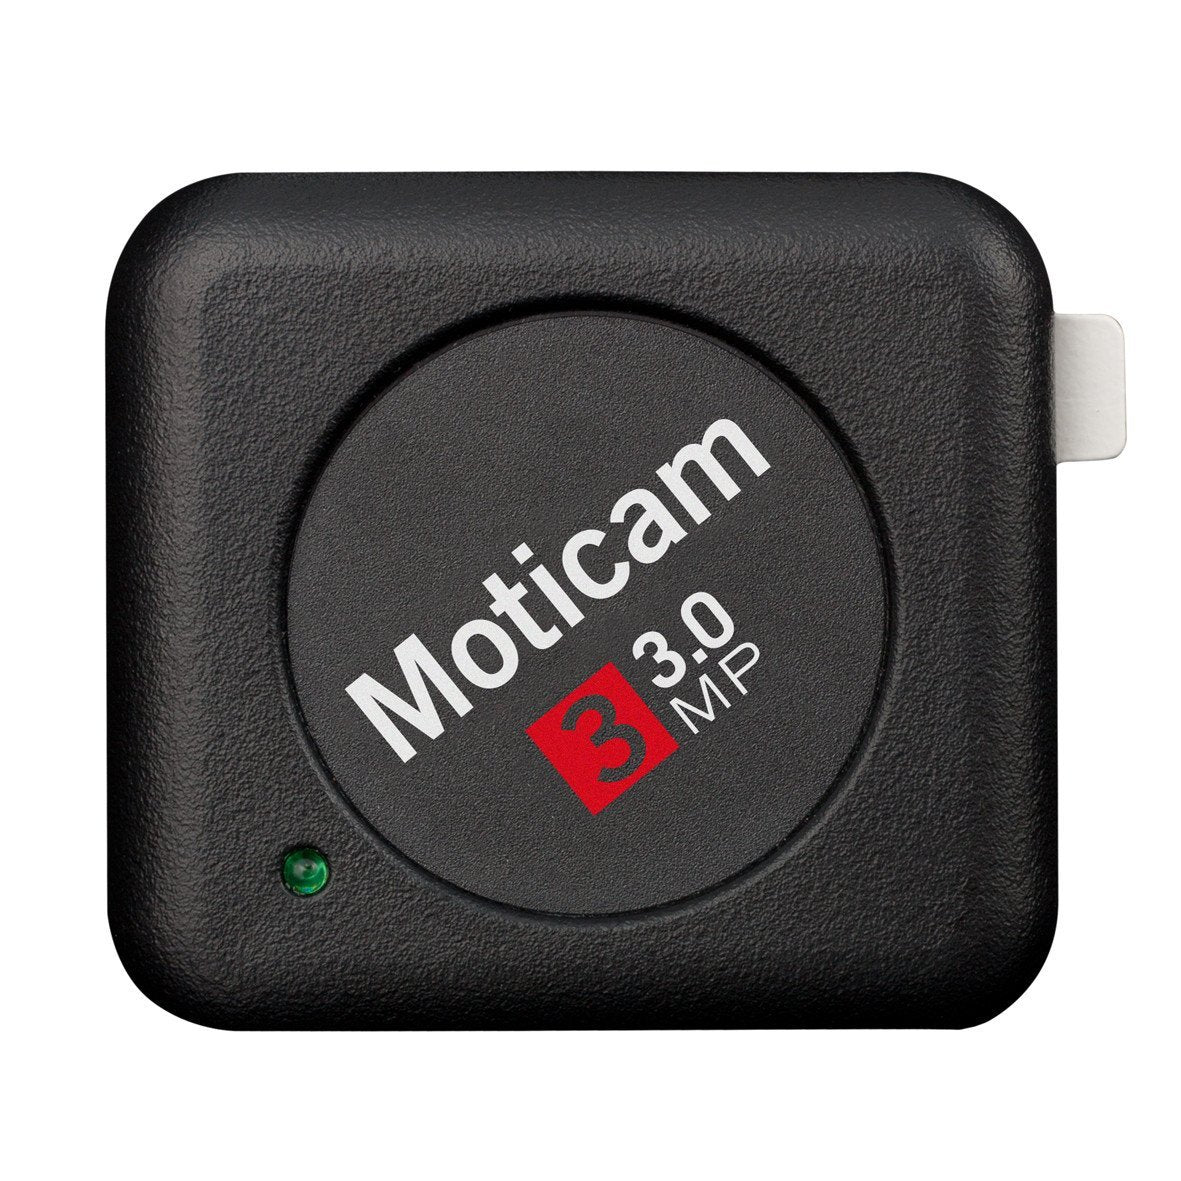 Moticam 3 Digital Microscope Camera